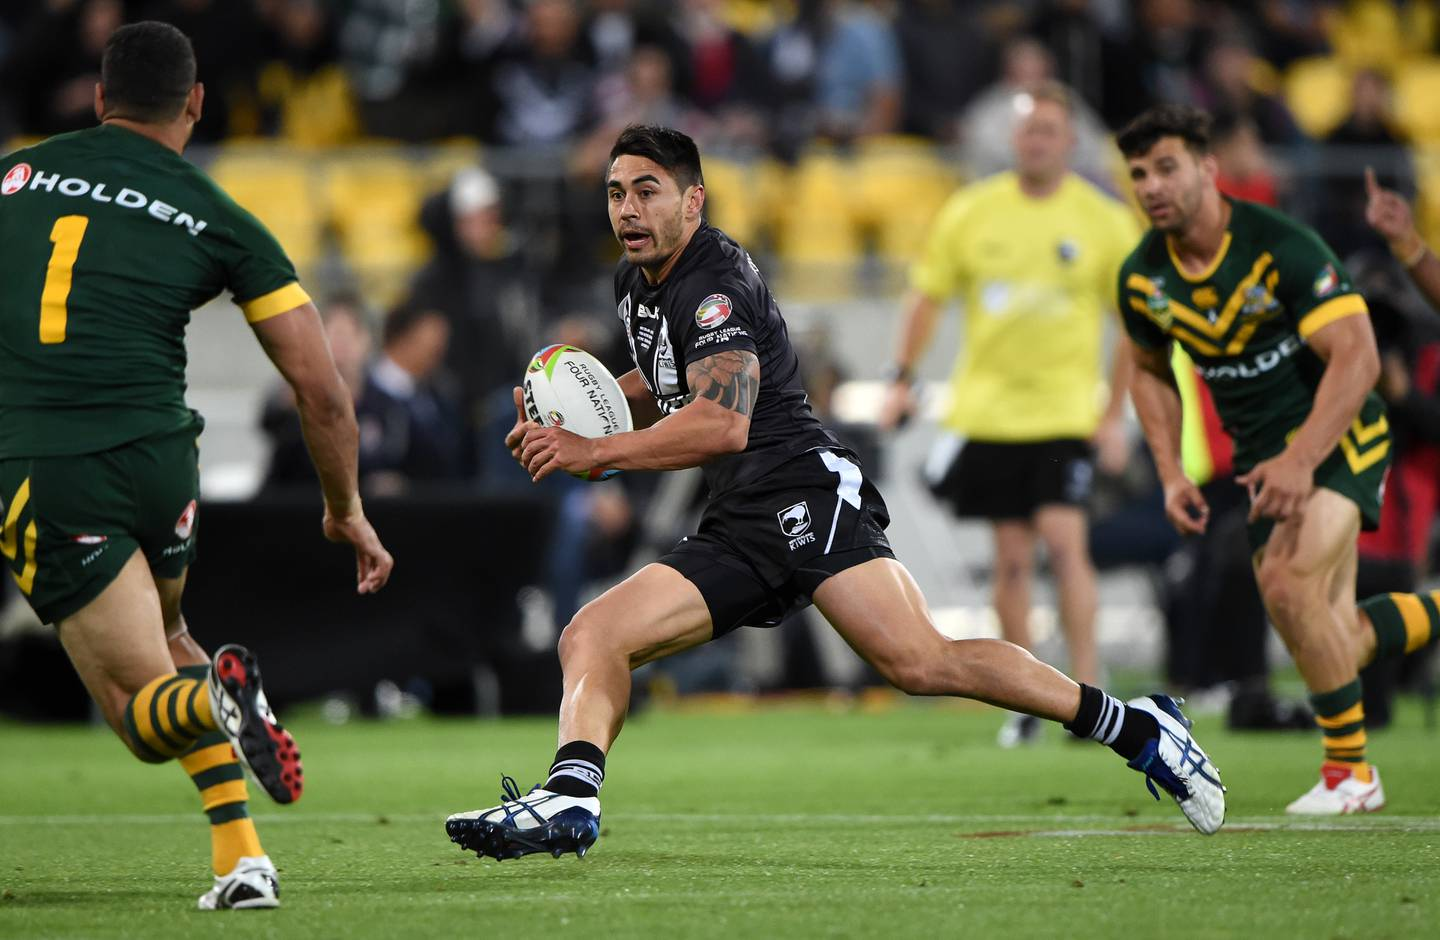 Shaun Johnson makes a break on his way to the try line during the 2014 New Zealand Kiwis and Australia Kangaroos Four Nations Rugby League final in Wellington. Wellington, New Zealand. Saturday 15 November 2014. Photo: Andrew Cornaga / www.Photosport.co.nz